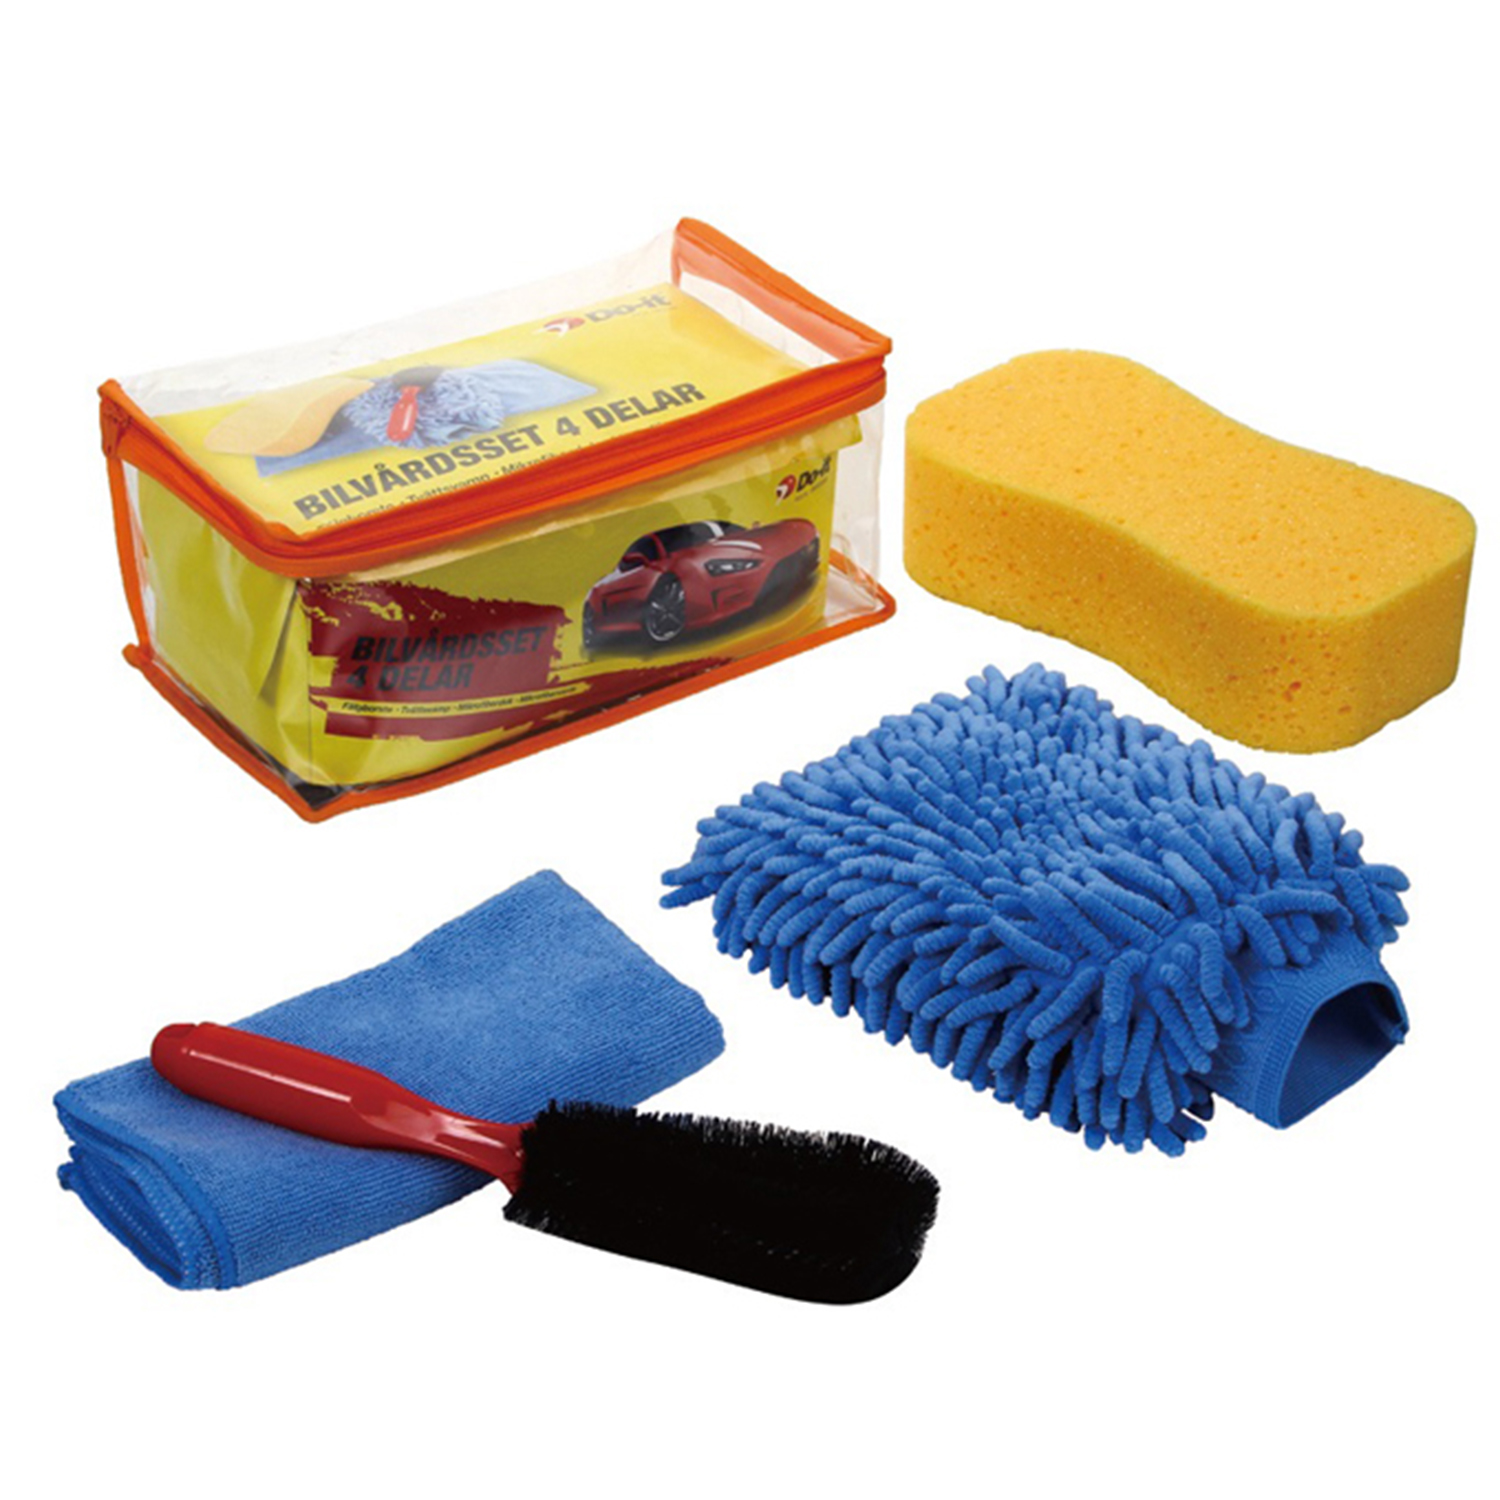 Microfiber car cleaning towel, with chenille mitt car cleaning kit